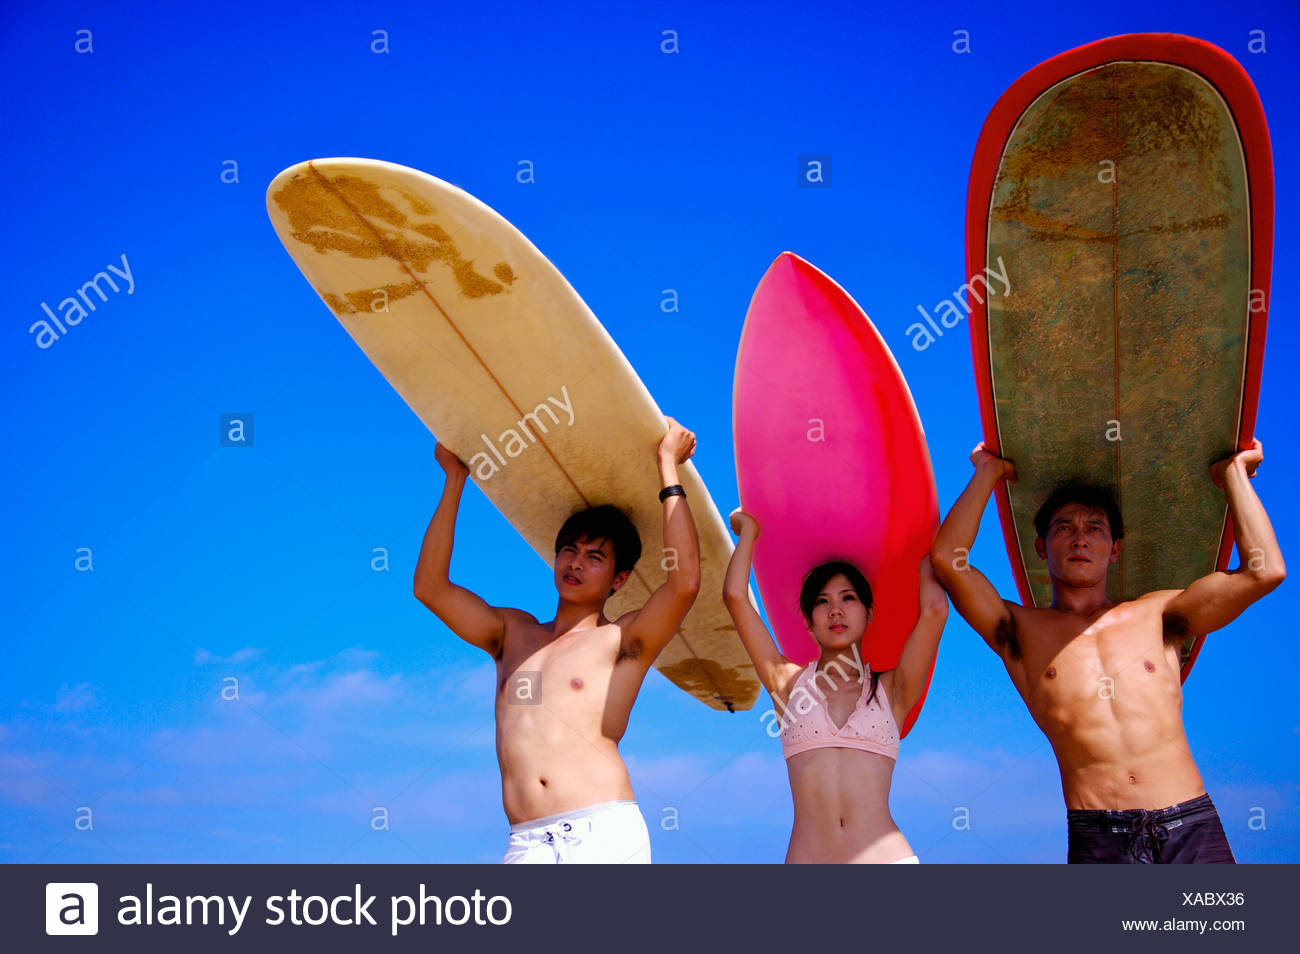 Three people carrying the surfboards on heads and looking away - Stock Image